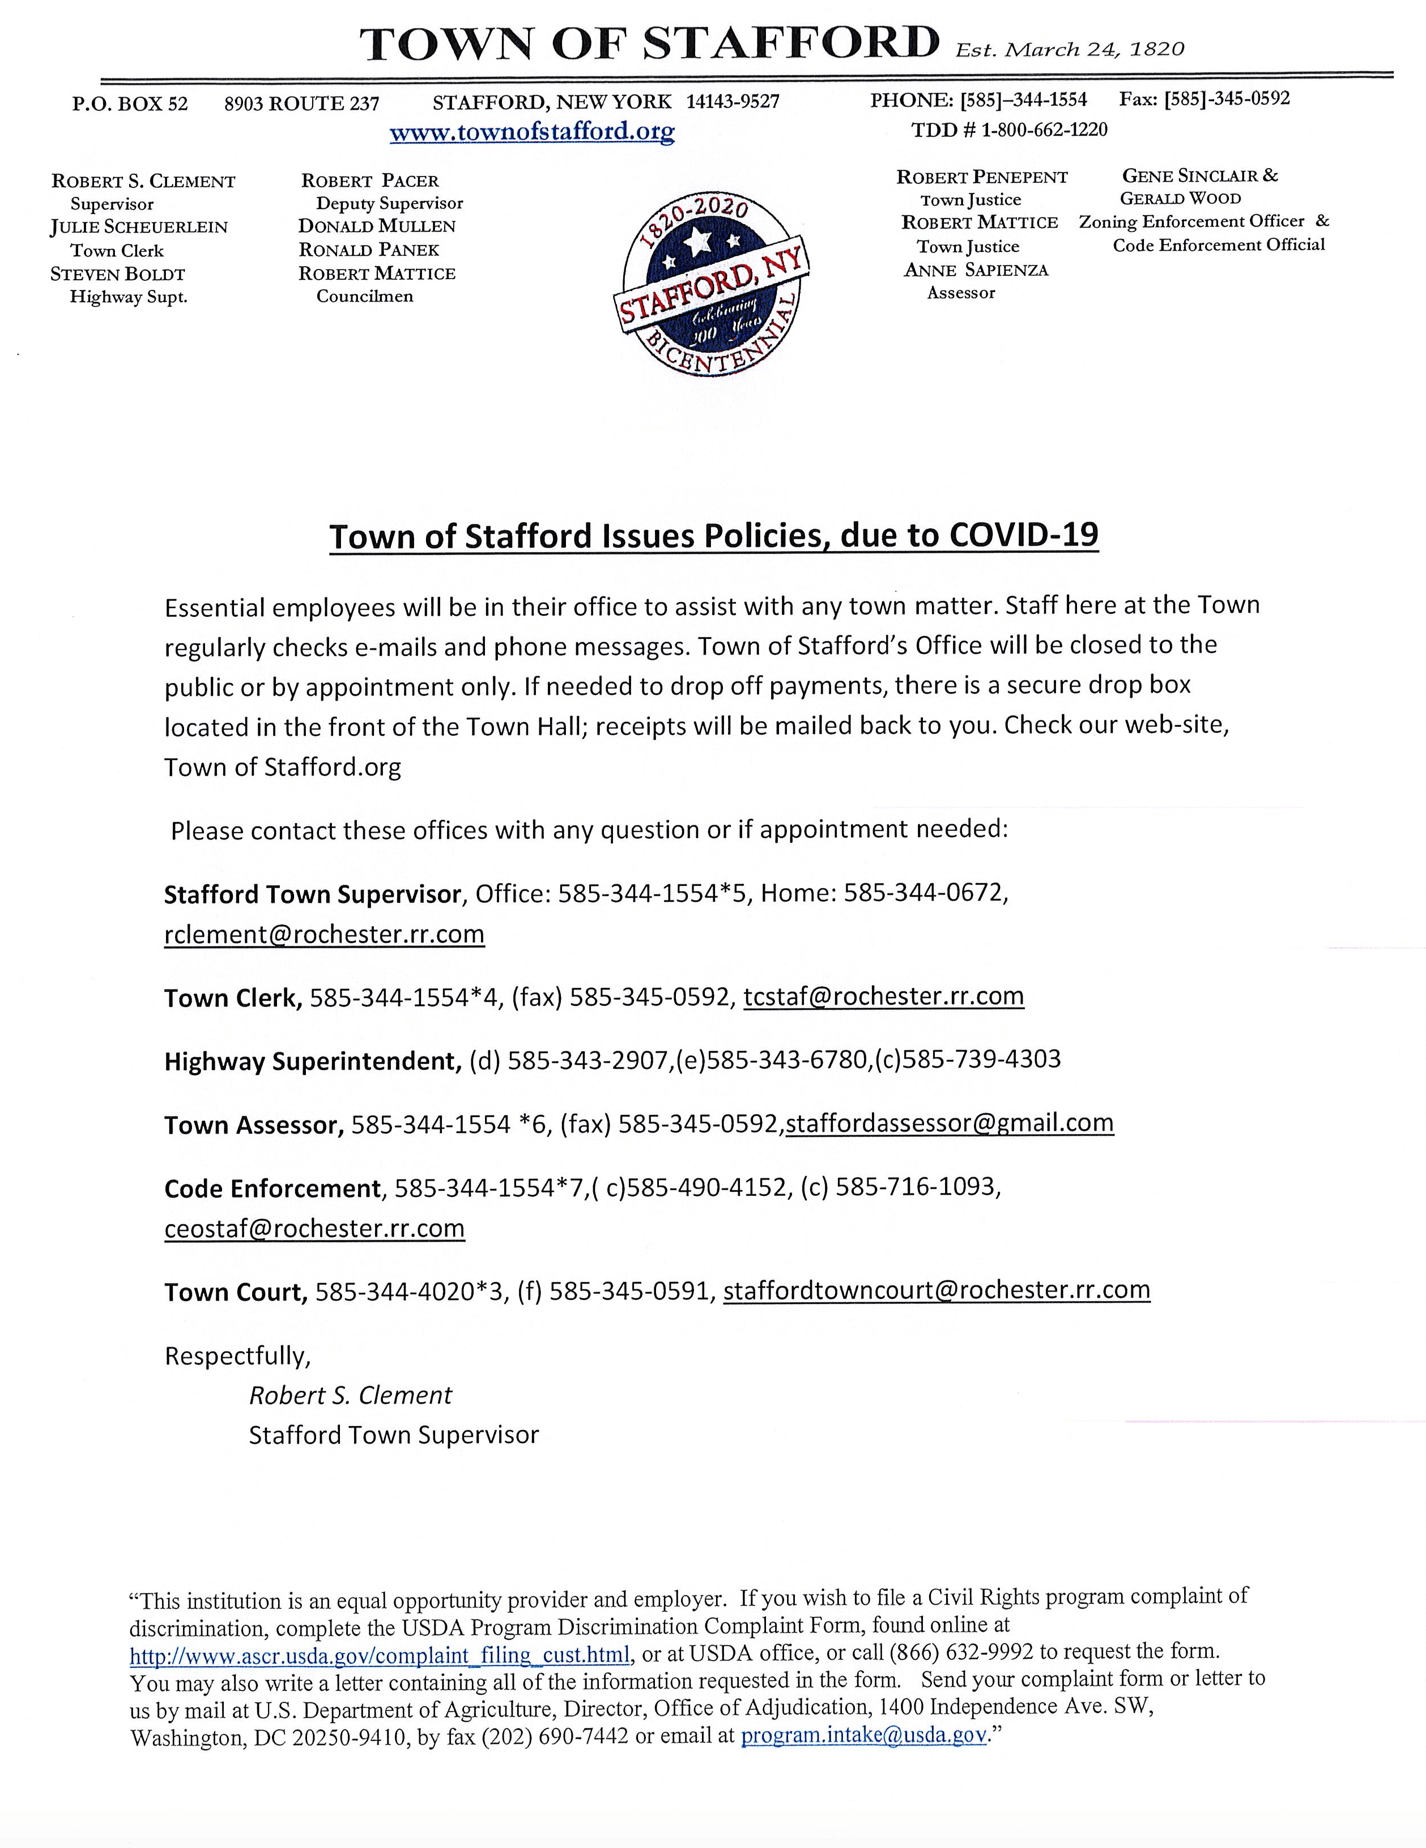 Town of Stafford COVID 19 Policies Alert